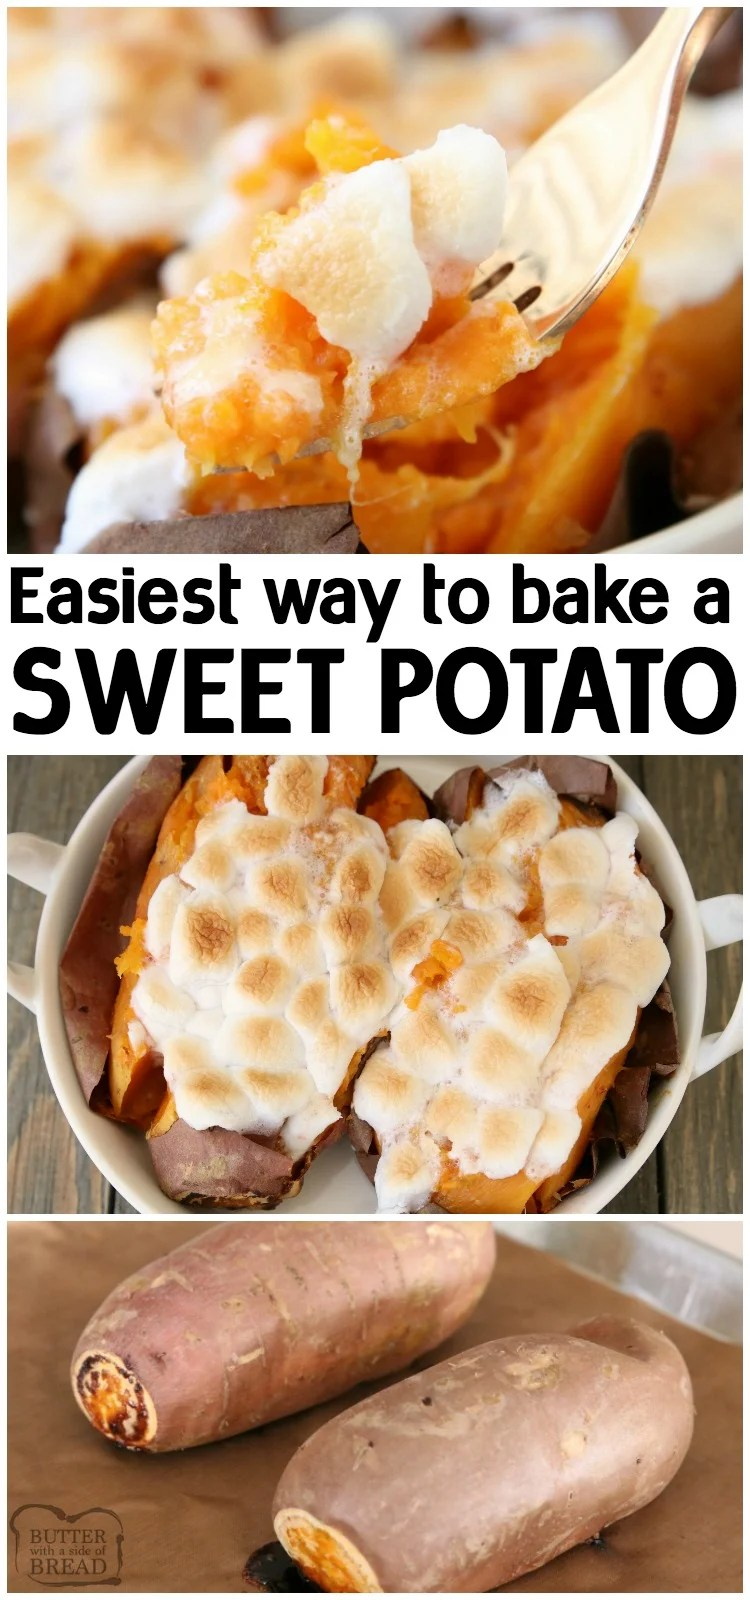 Baked Sweet Potato using the easiest method ever! Super simple, tried and true way that shows just how easy it is to bake a sweet potato. #sweetpotatoes #sweetpotato #baking #food #recipe